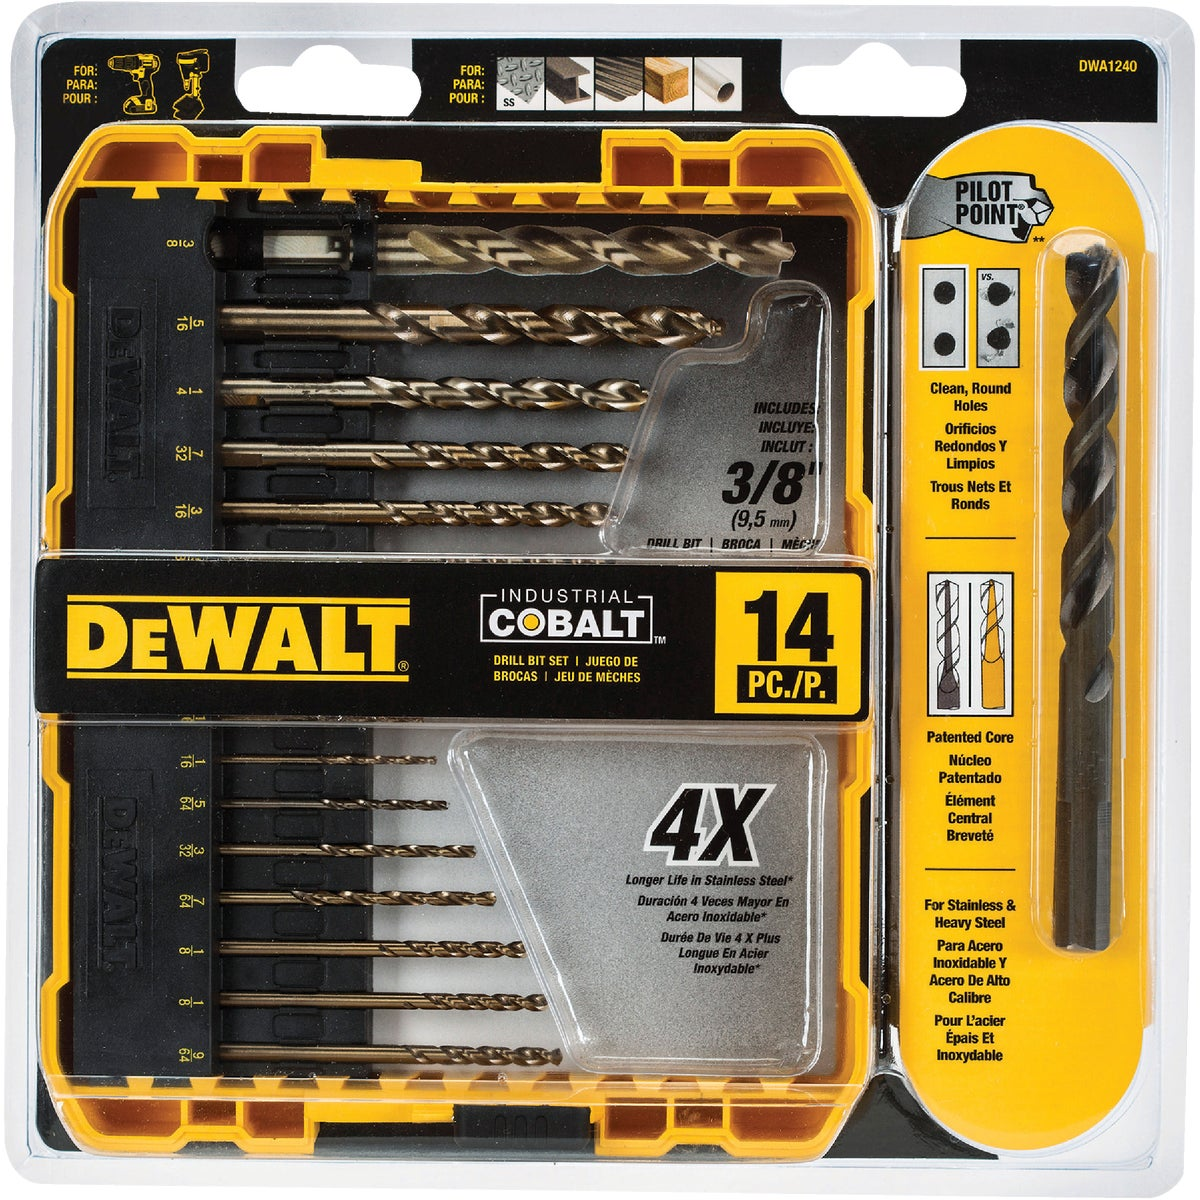 13PC COBLT DRILL BIT SET - DW1263 by DeWalt